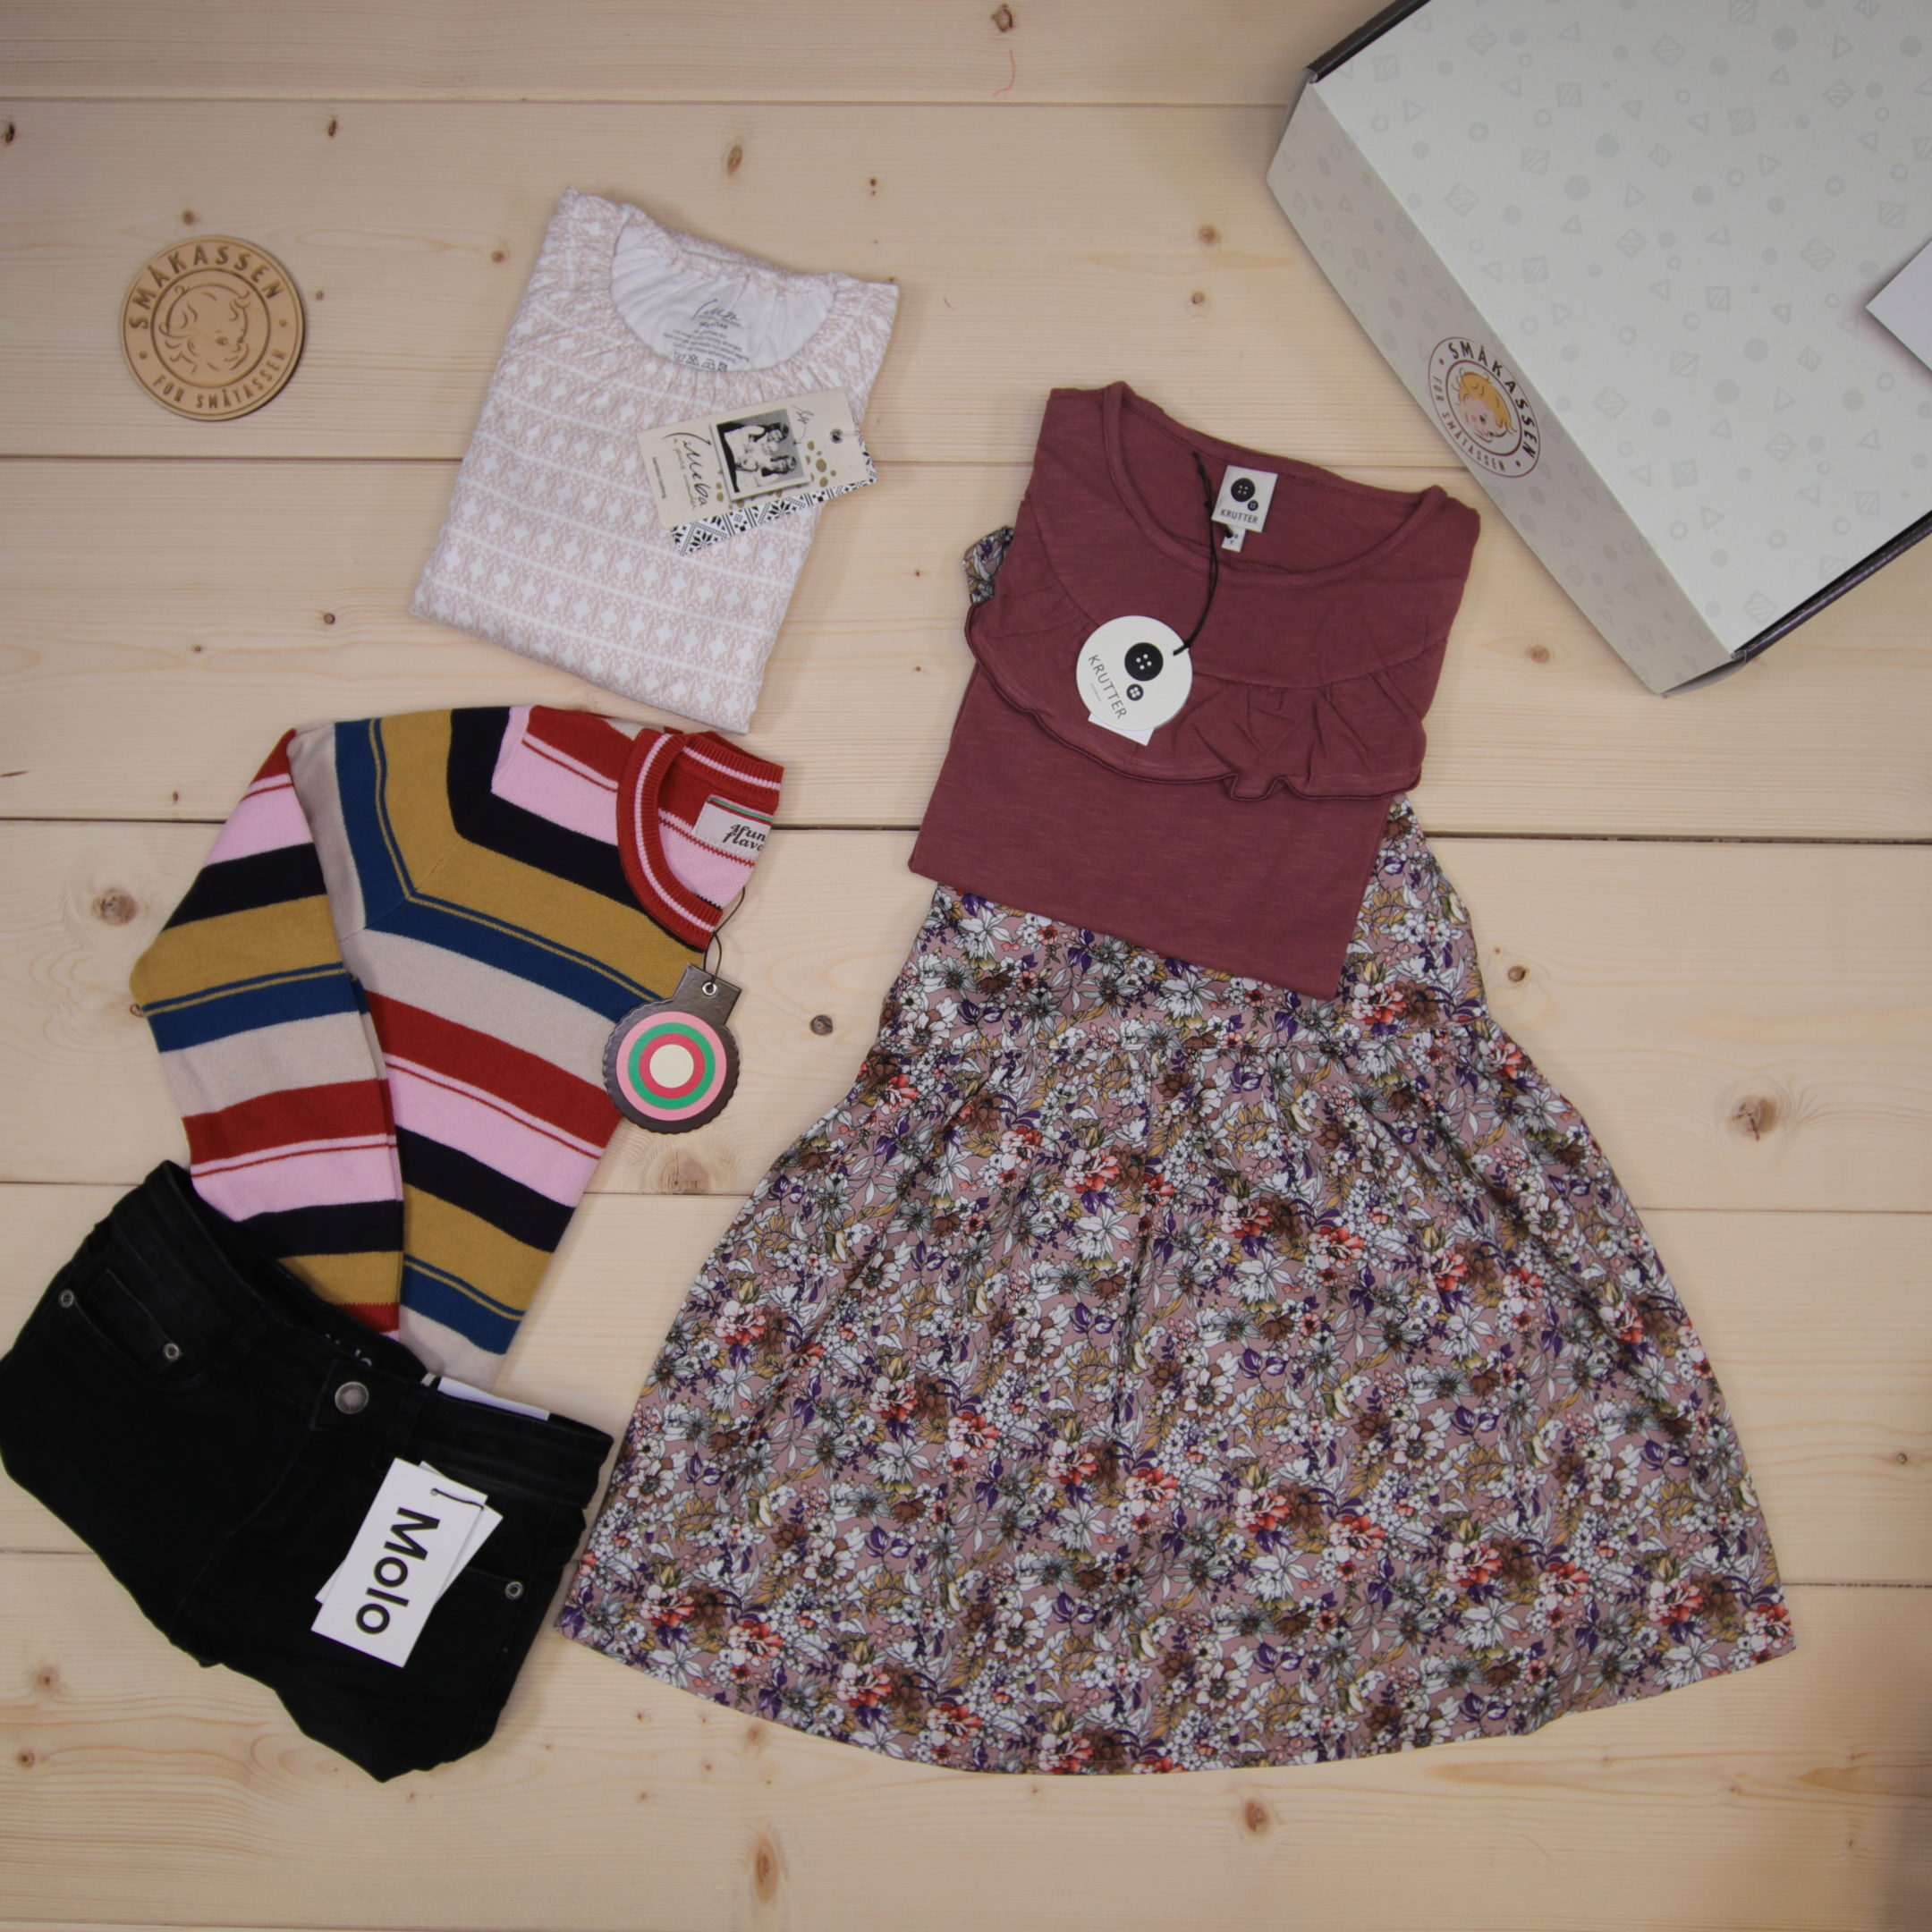 This is a 166 GBP* Småkassen that we prepared for a girl  in the styles cute, cool, and colorful in size 134